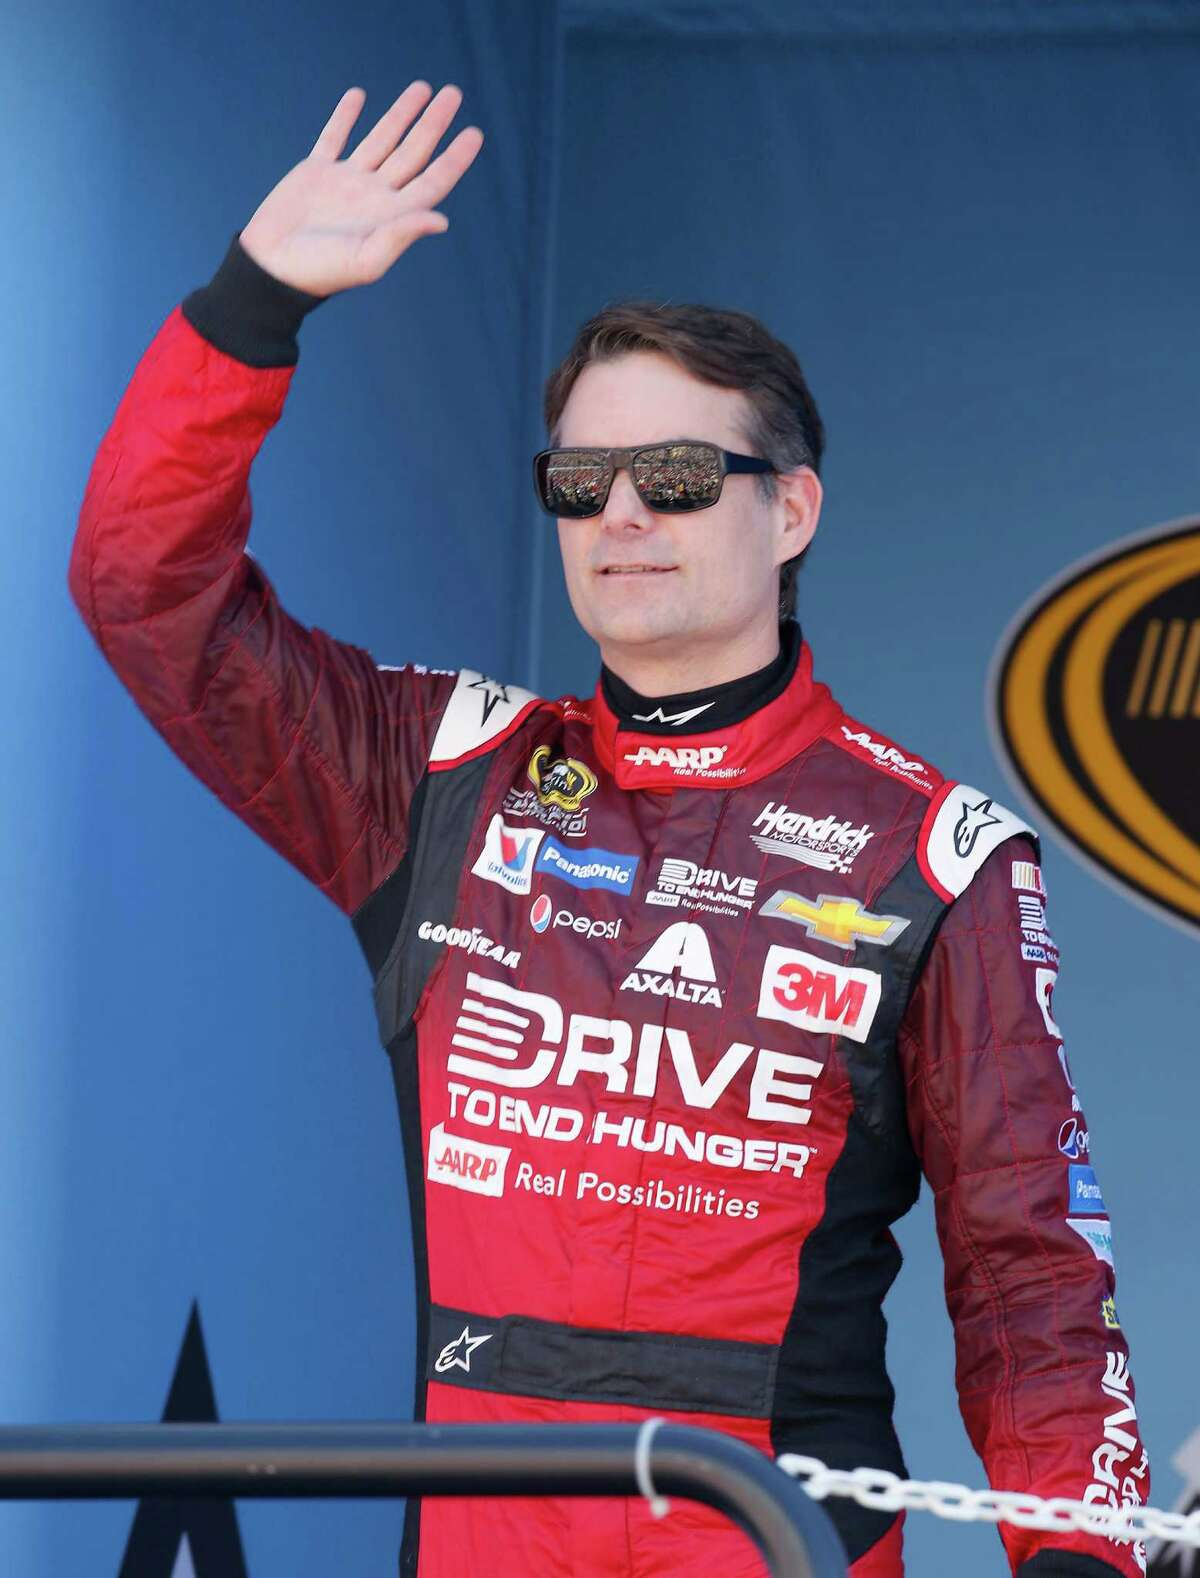 Jeff Gordon waves to the fans before a NASCAR Sprint Cup Series auto race on Sunday, March 15, 2015, in Avondale, Ariz. (AP Photo/Rick Scuteri) ORG XMIT: AZRS109